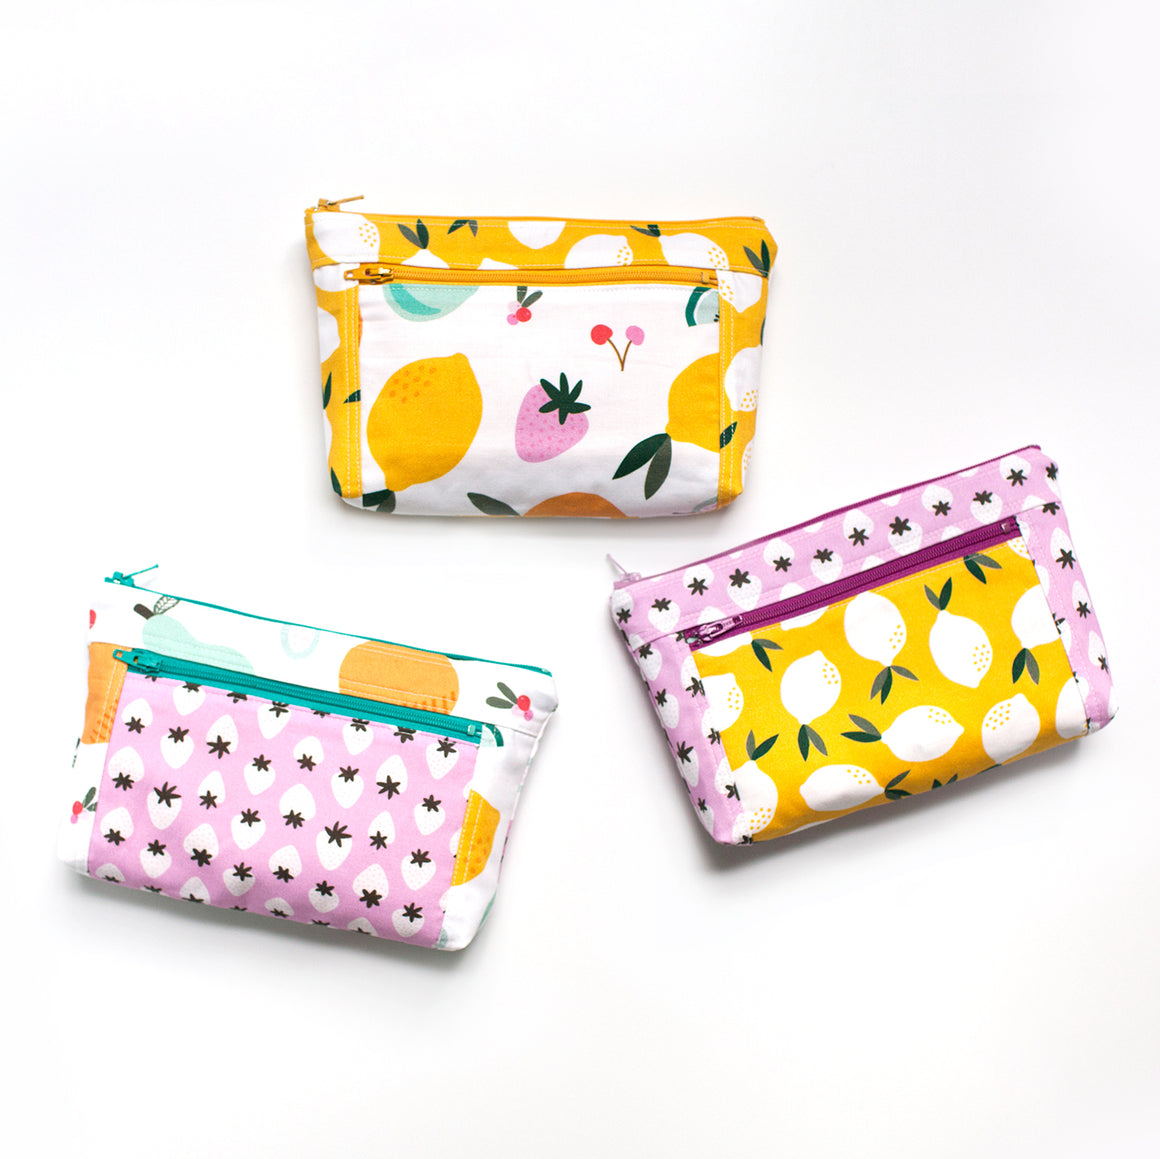 Devon Zipper Pouch